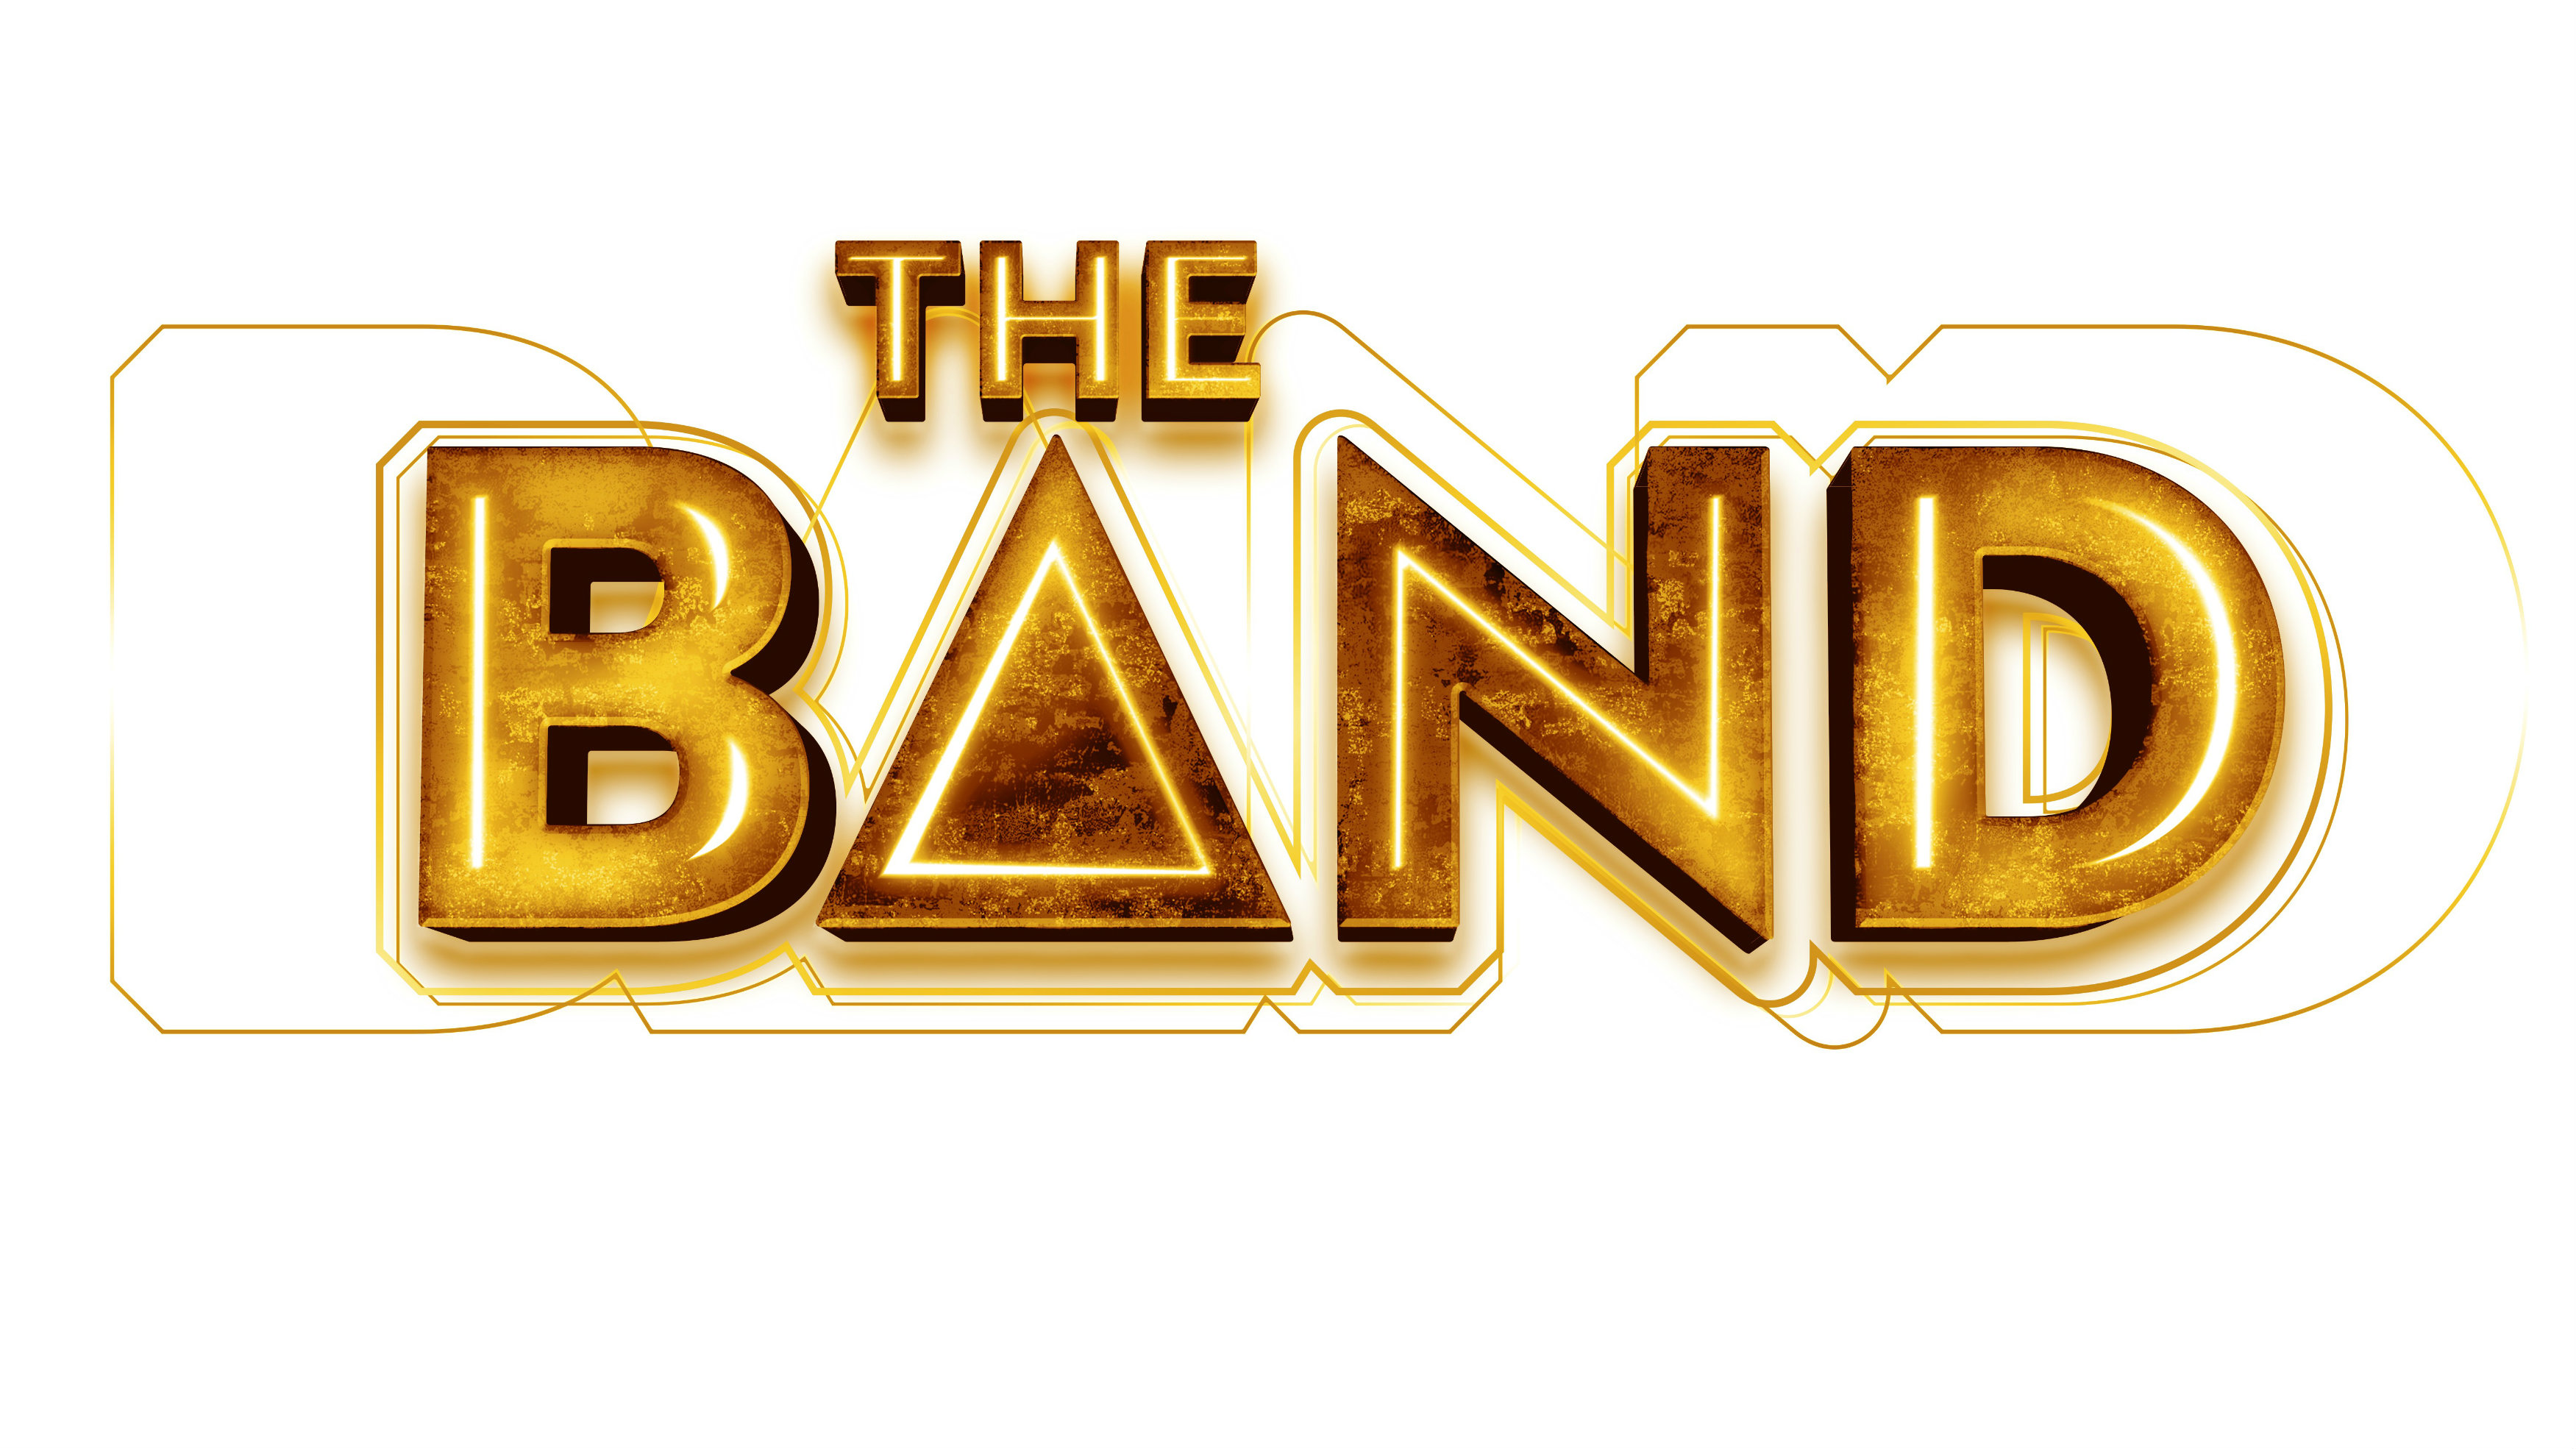 TV show The Band